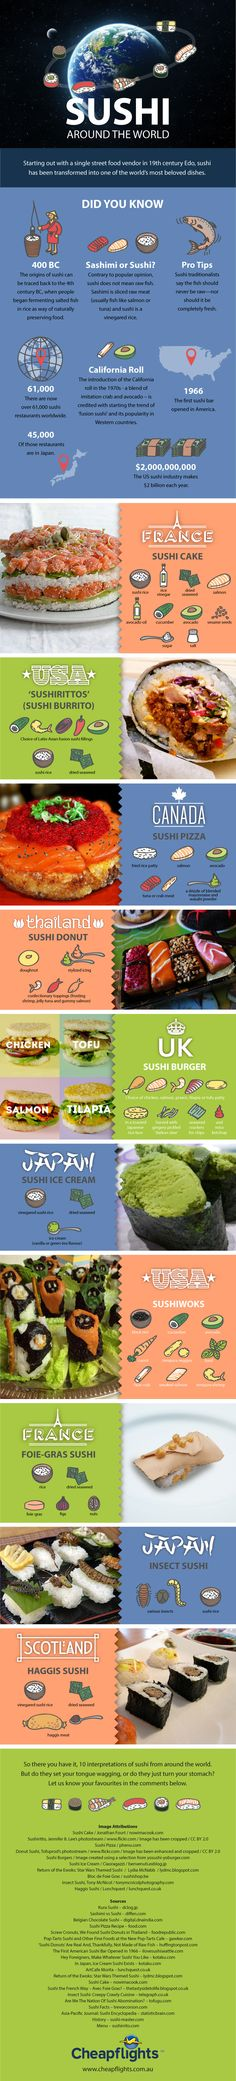 A look at a range of strange sushi styles from around the world - include a haggis sushi from Scotland and insect sushi in Japan. >> https://www.finedininglovers.com/blog/food-drinks/sushi-styles/